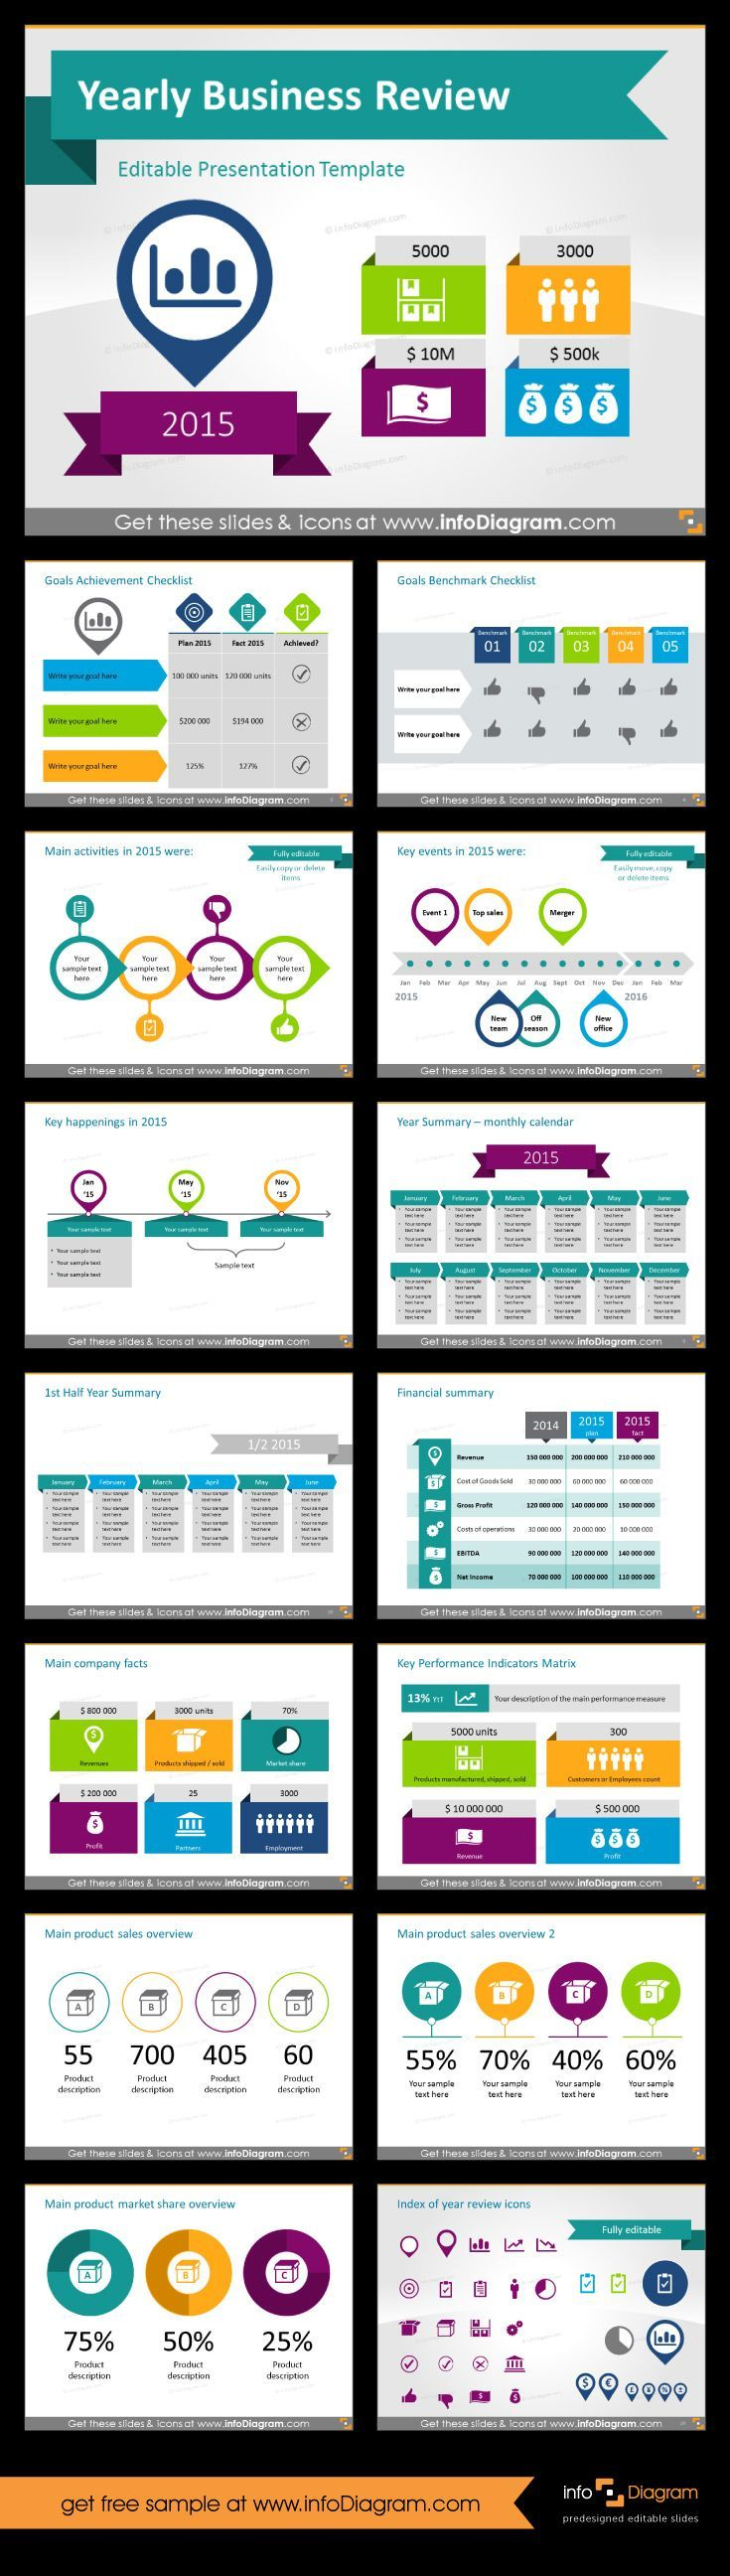 cool end of year business review presentation template. for board, Presentation templates